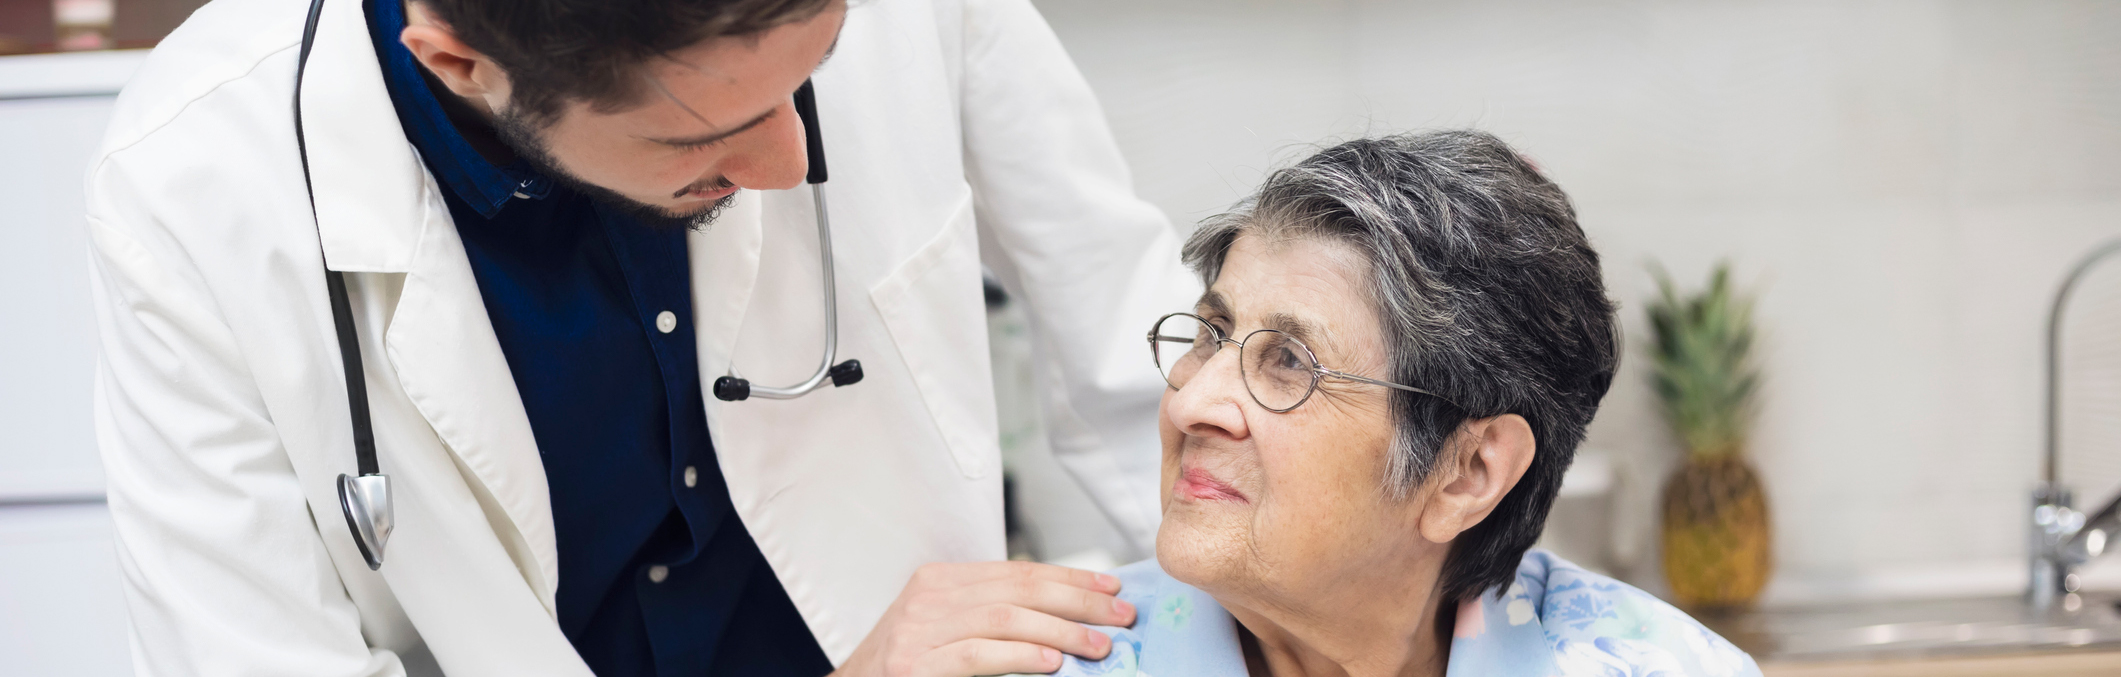 Doctor interacting with older patient.